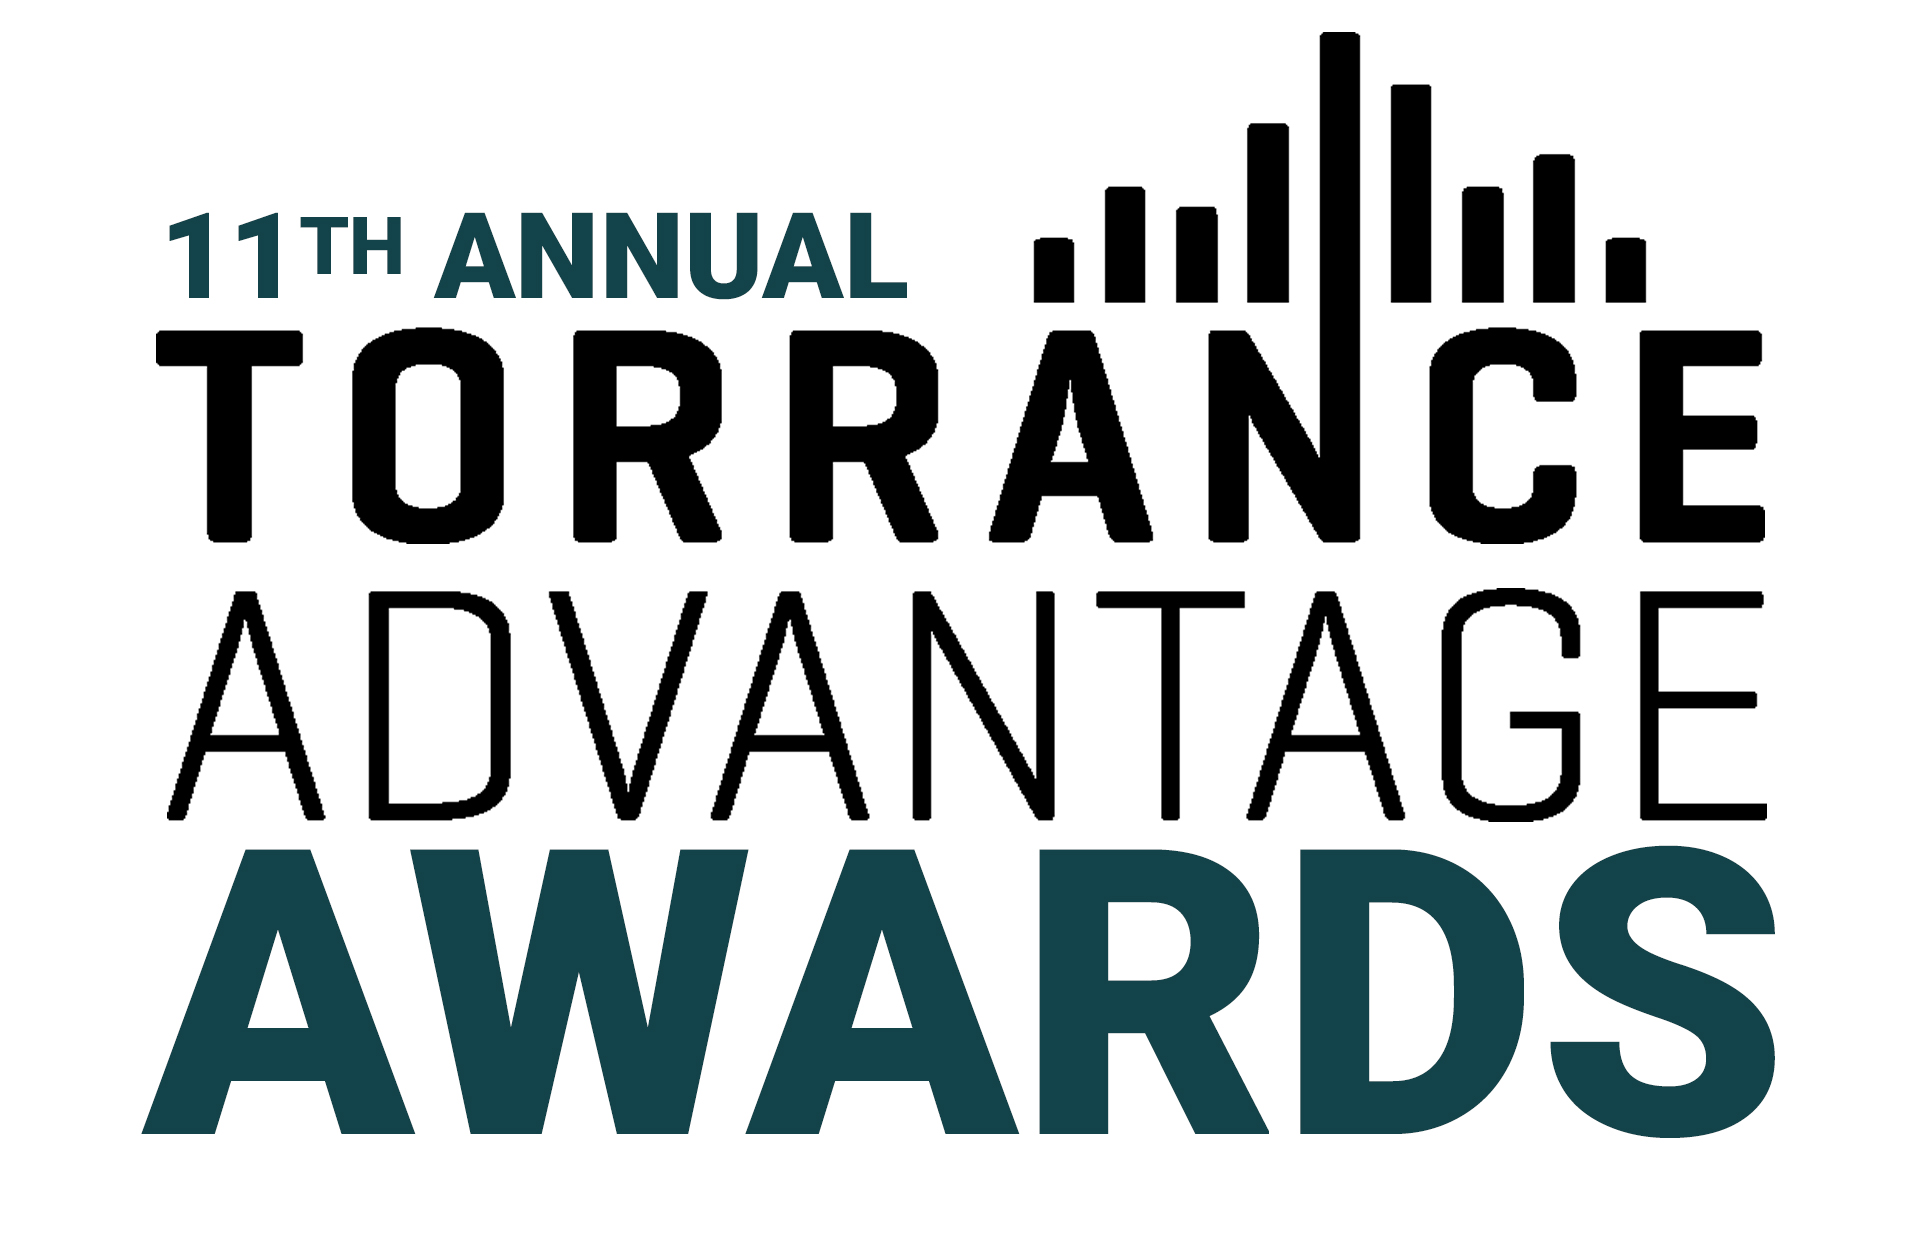 Torrance Advantage Awards: Now Accepting Applications